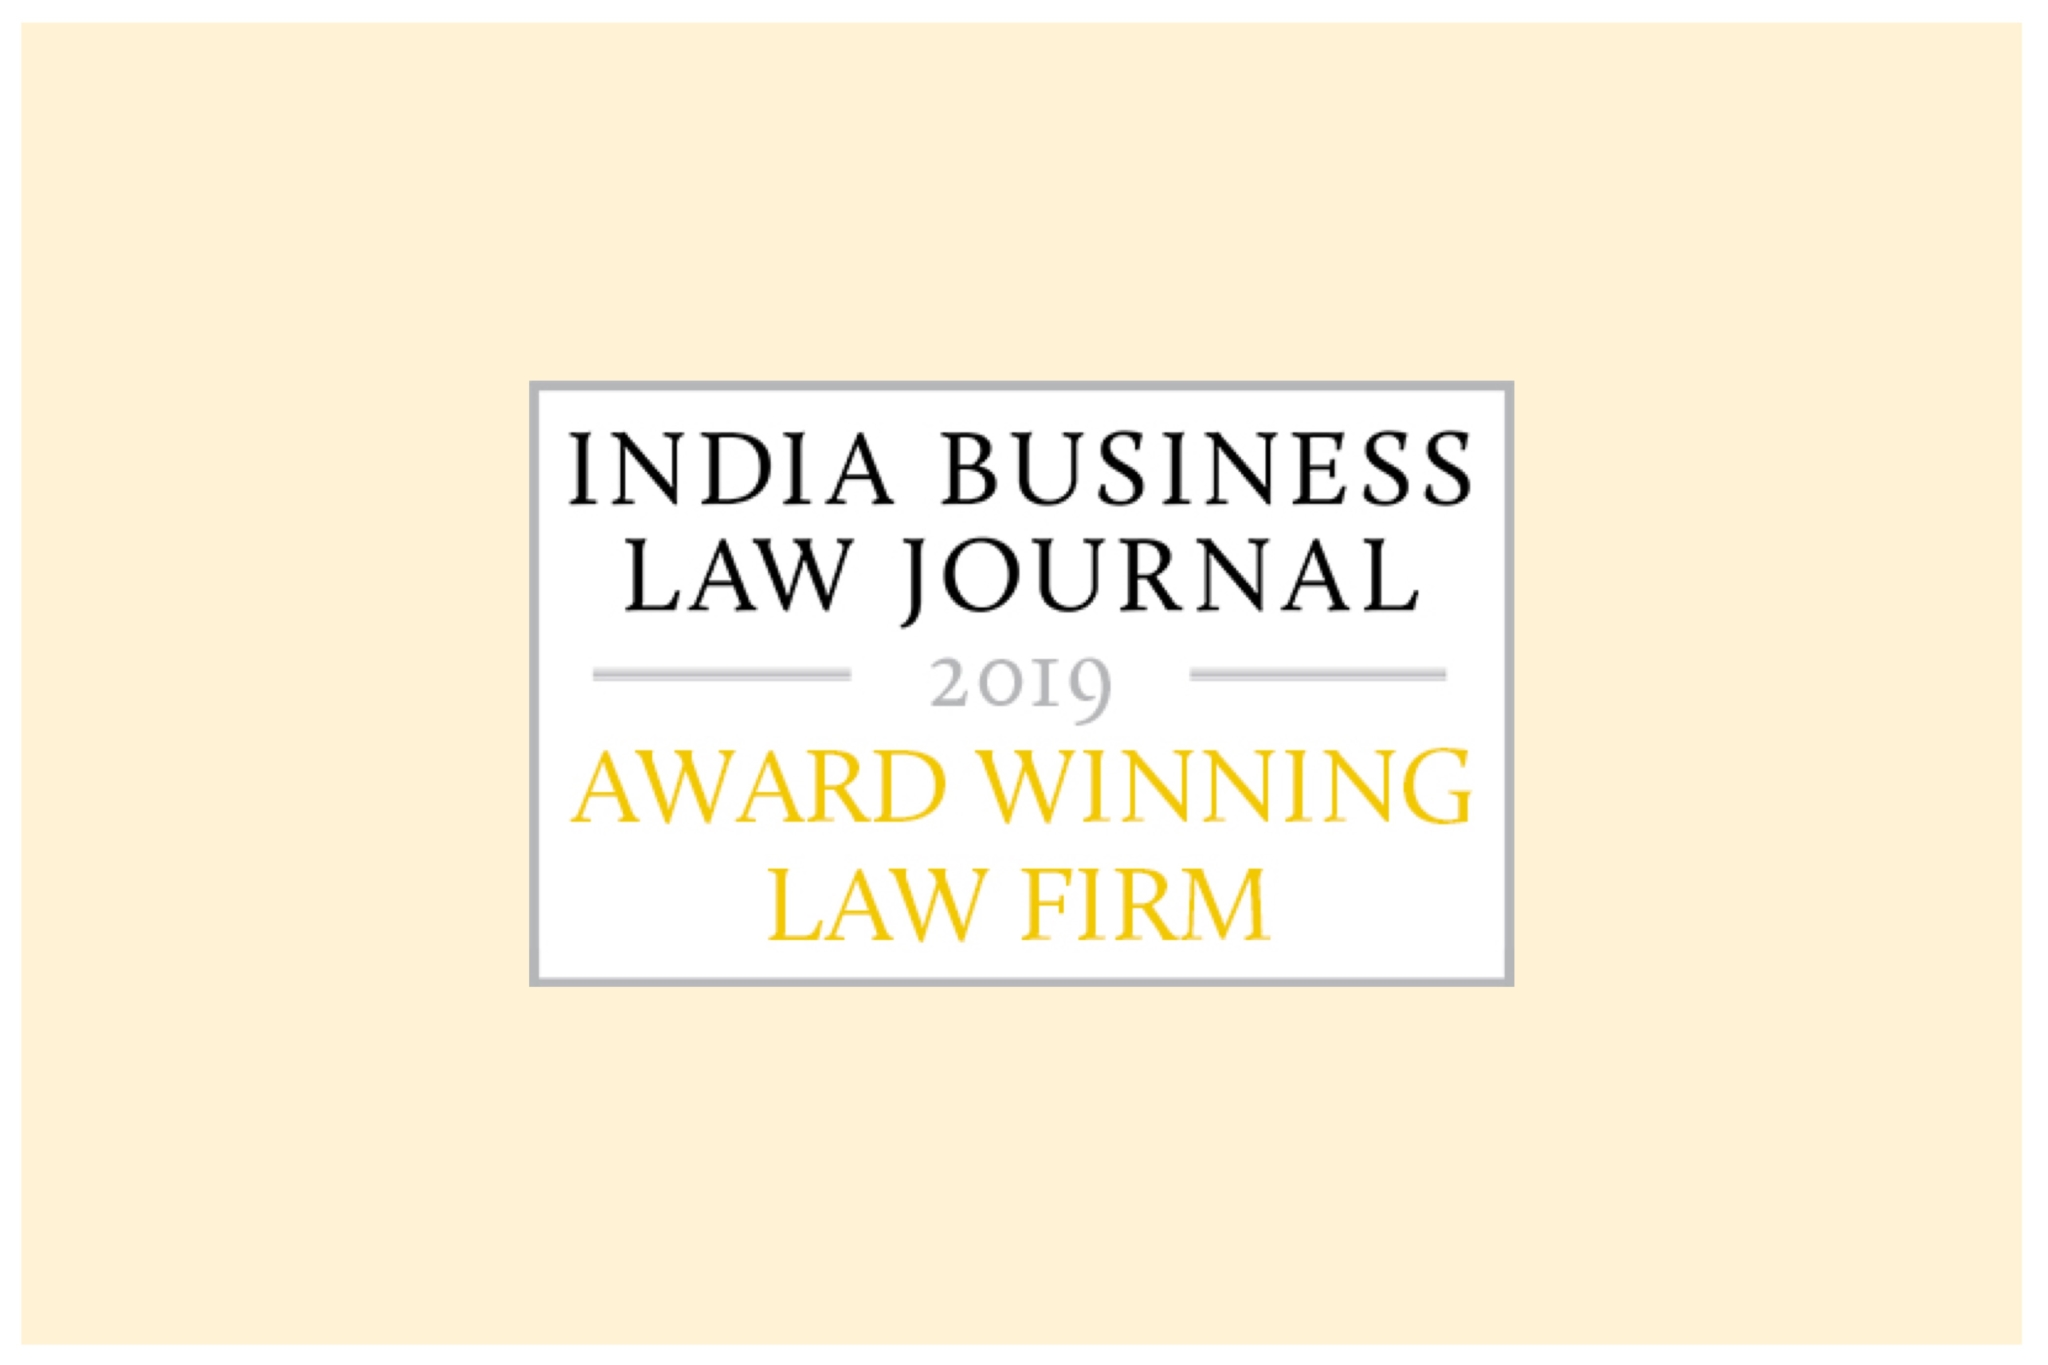 India Business Law Journal (IBLJ) Awards, 2019